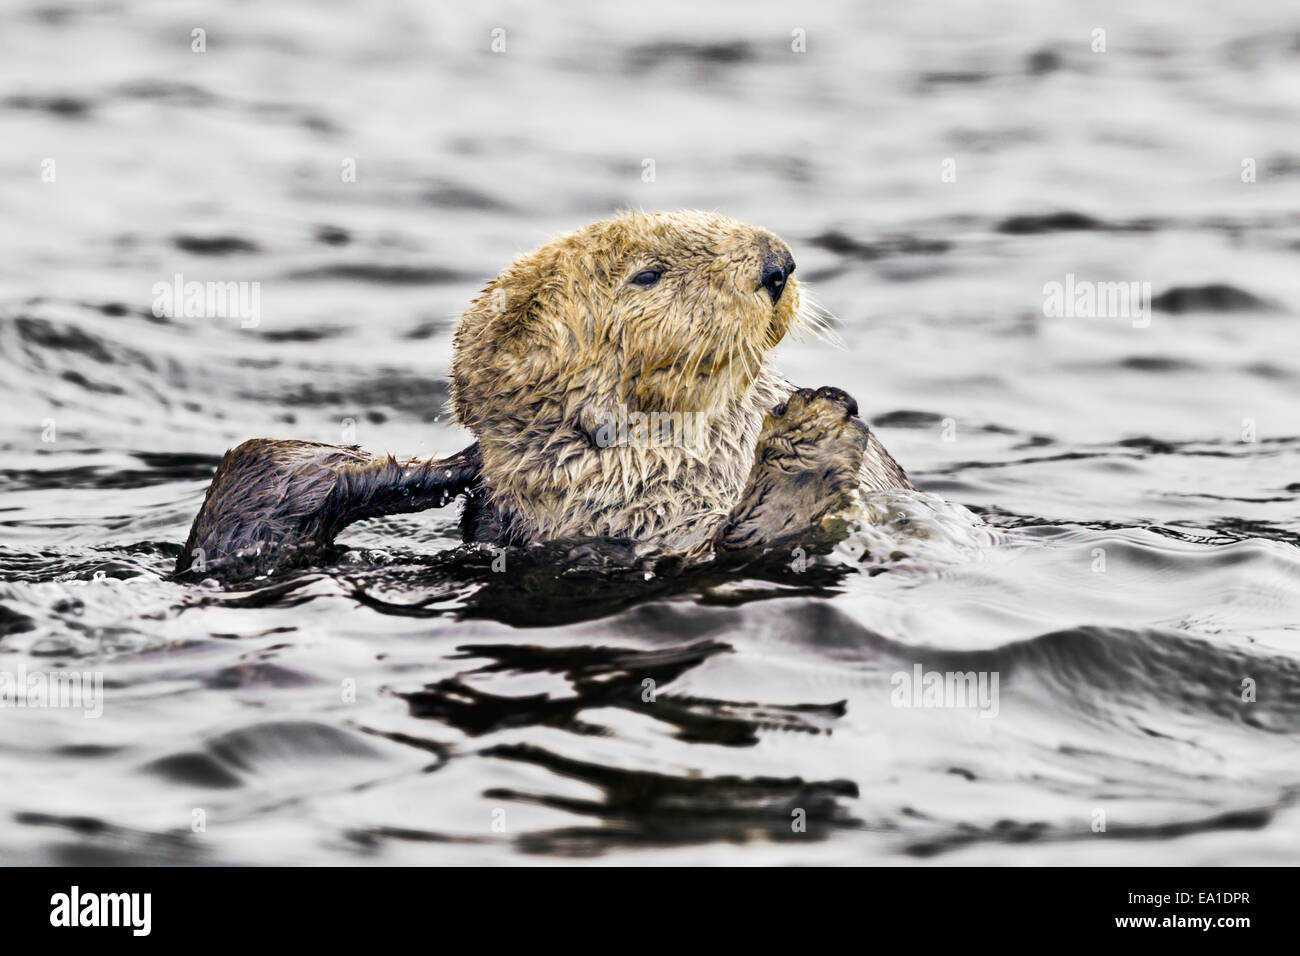 Northern sea otter grooming buoyantly in the sea off the Alaska coast - Stock Image